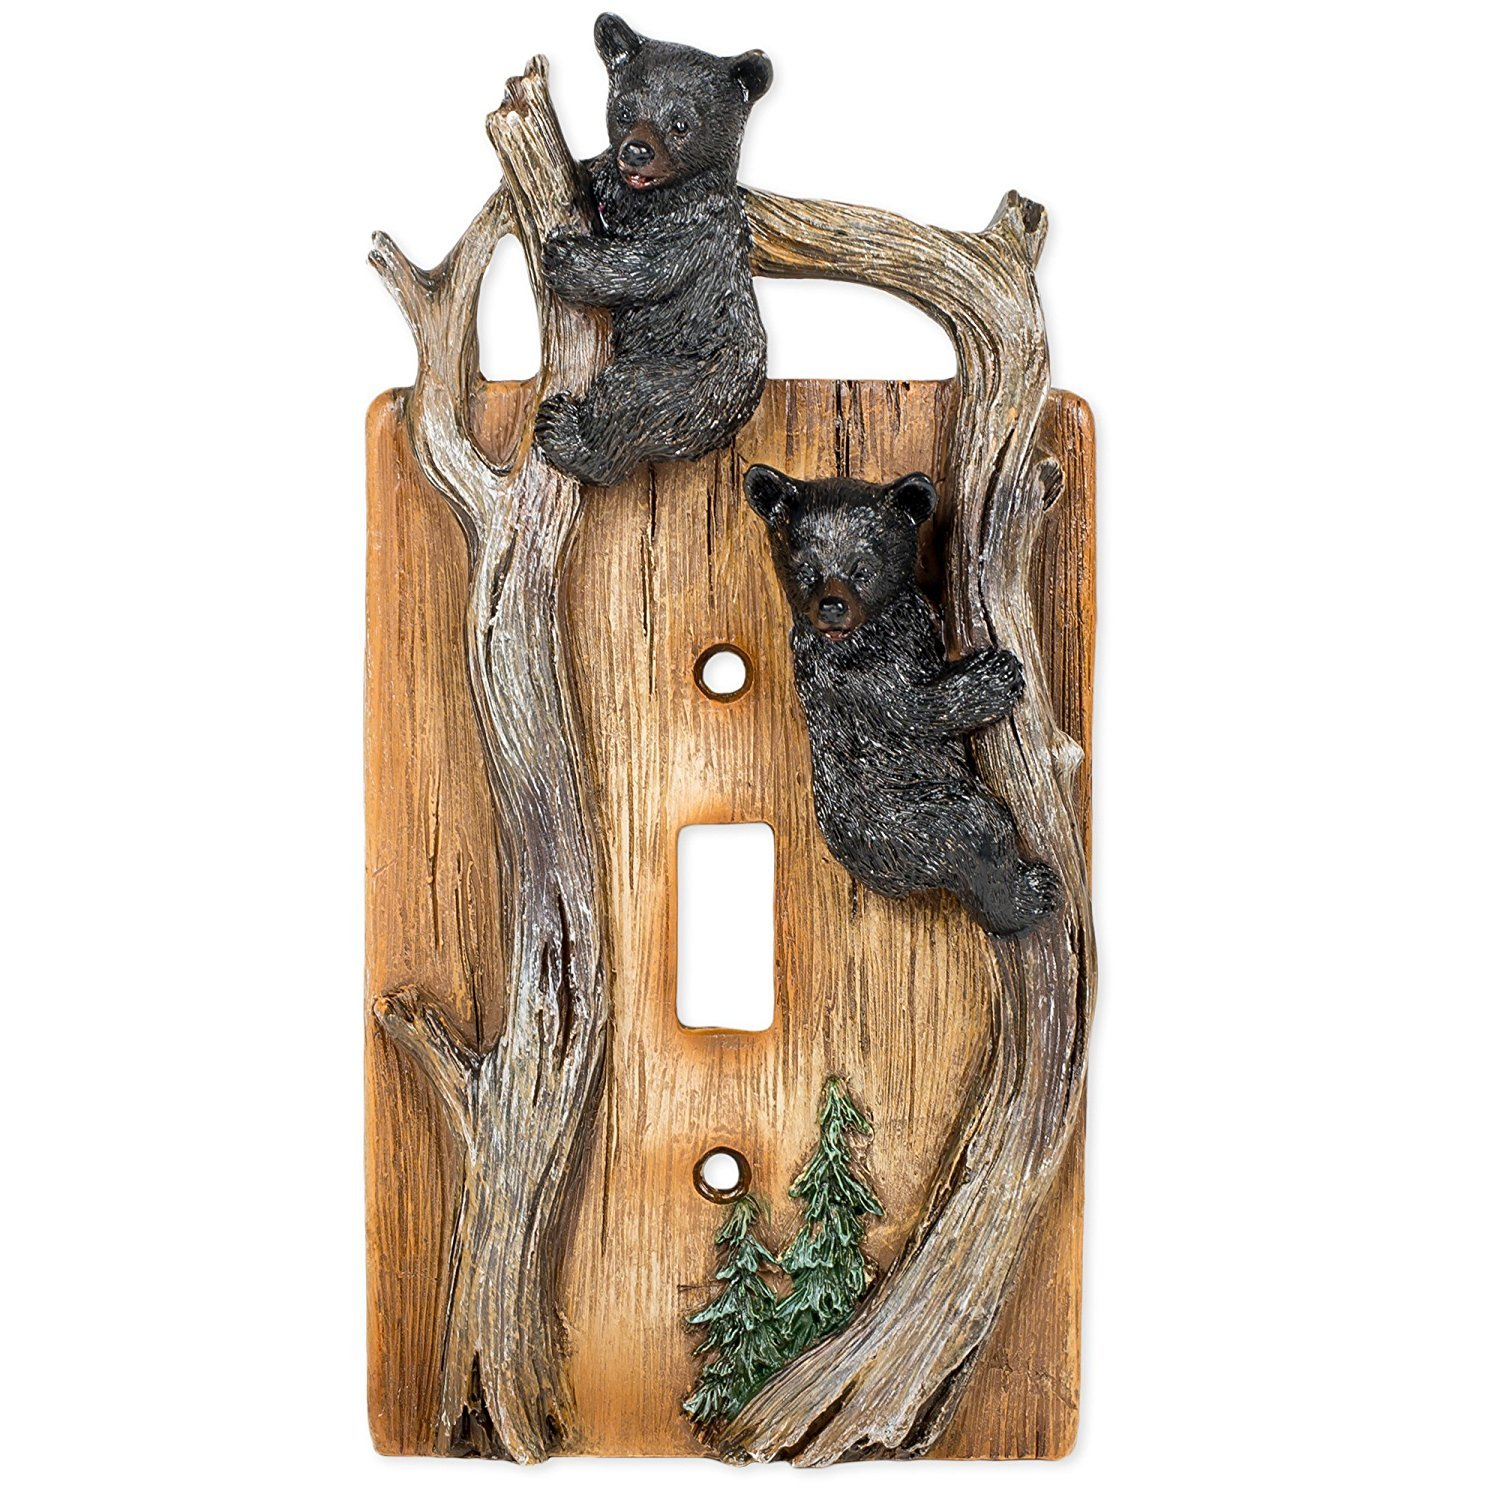 Bears on Tree Limb Electrical Resin Switch Plate Cover by ONXIGLI